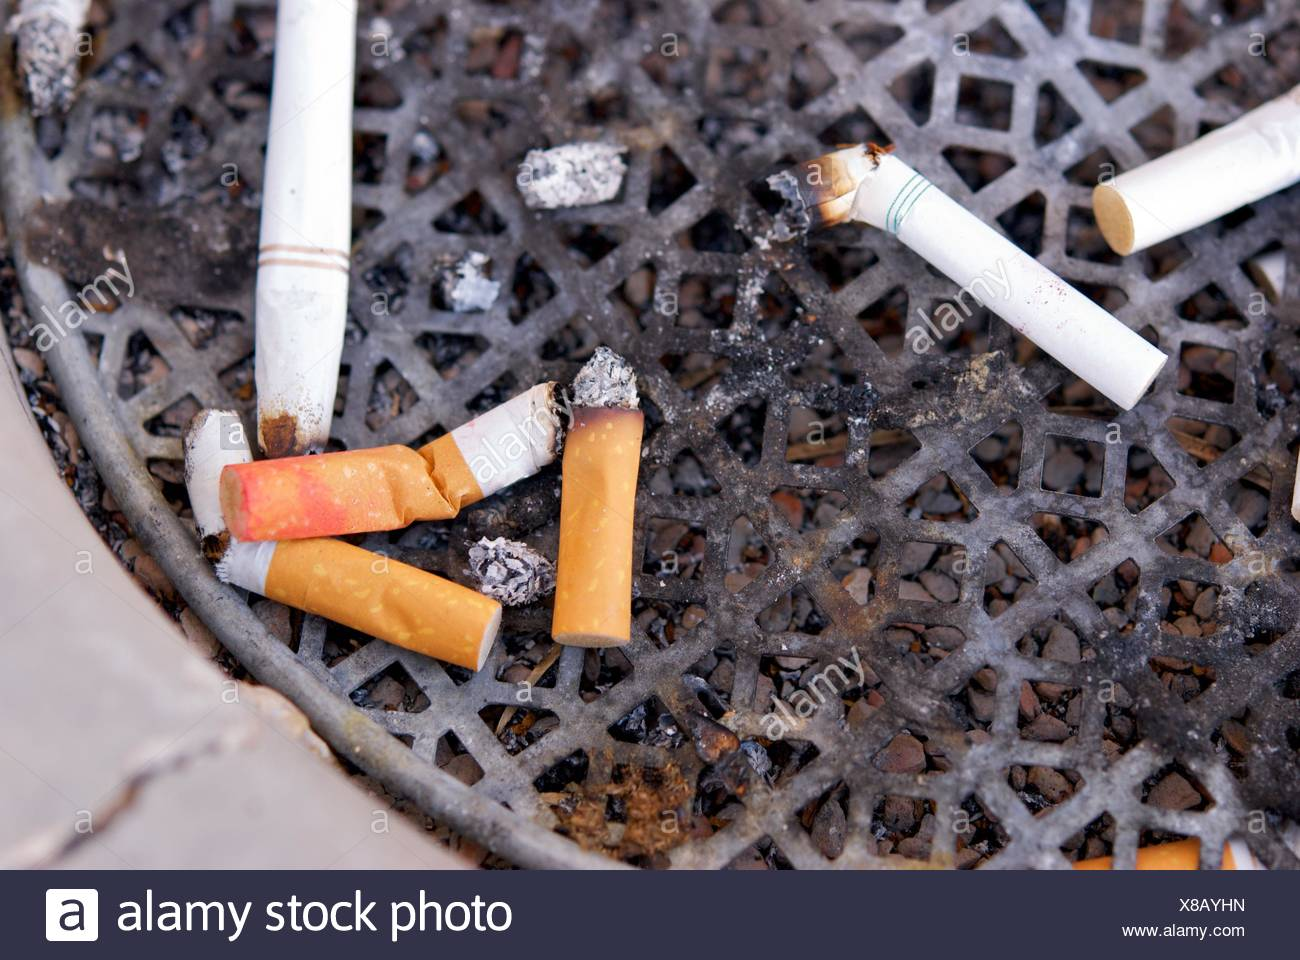 Cigarette Ashtray with Used Filters - Stock Image